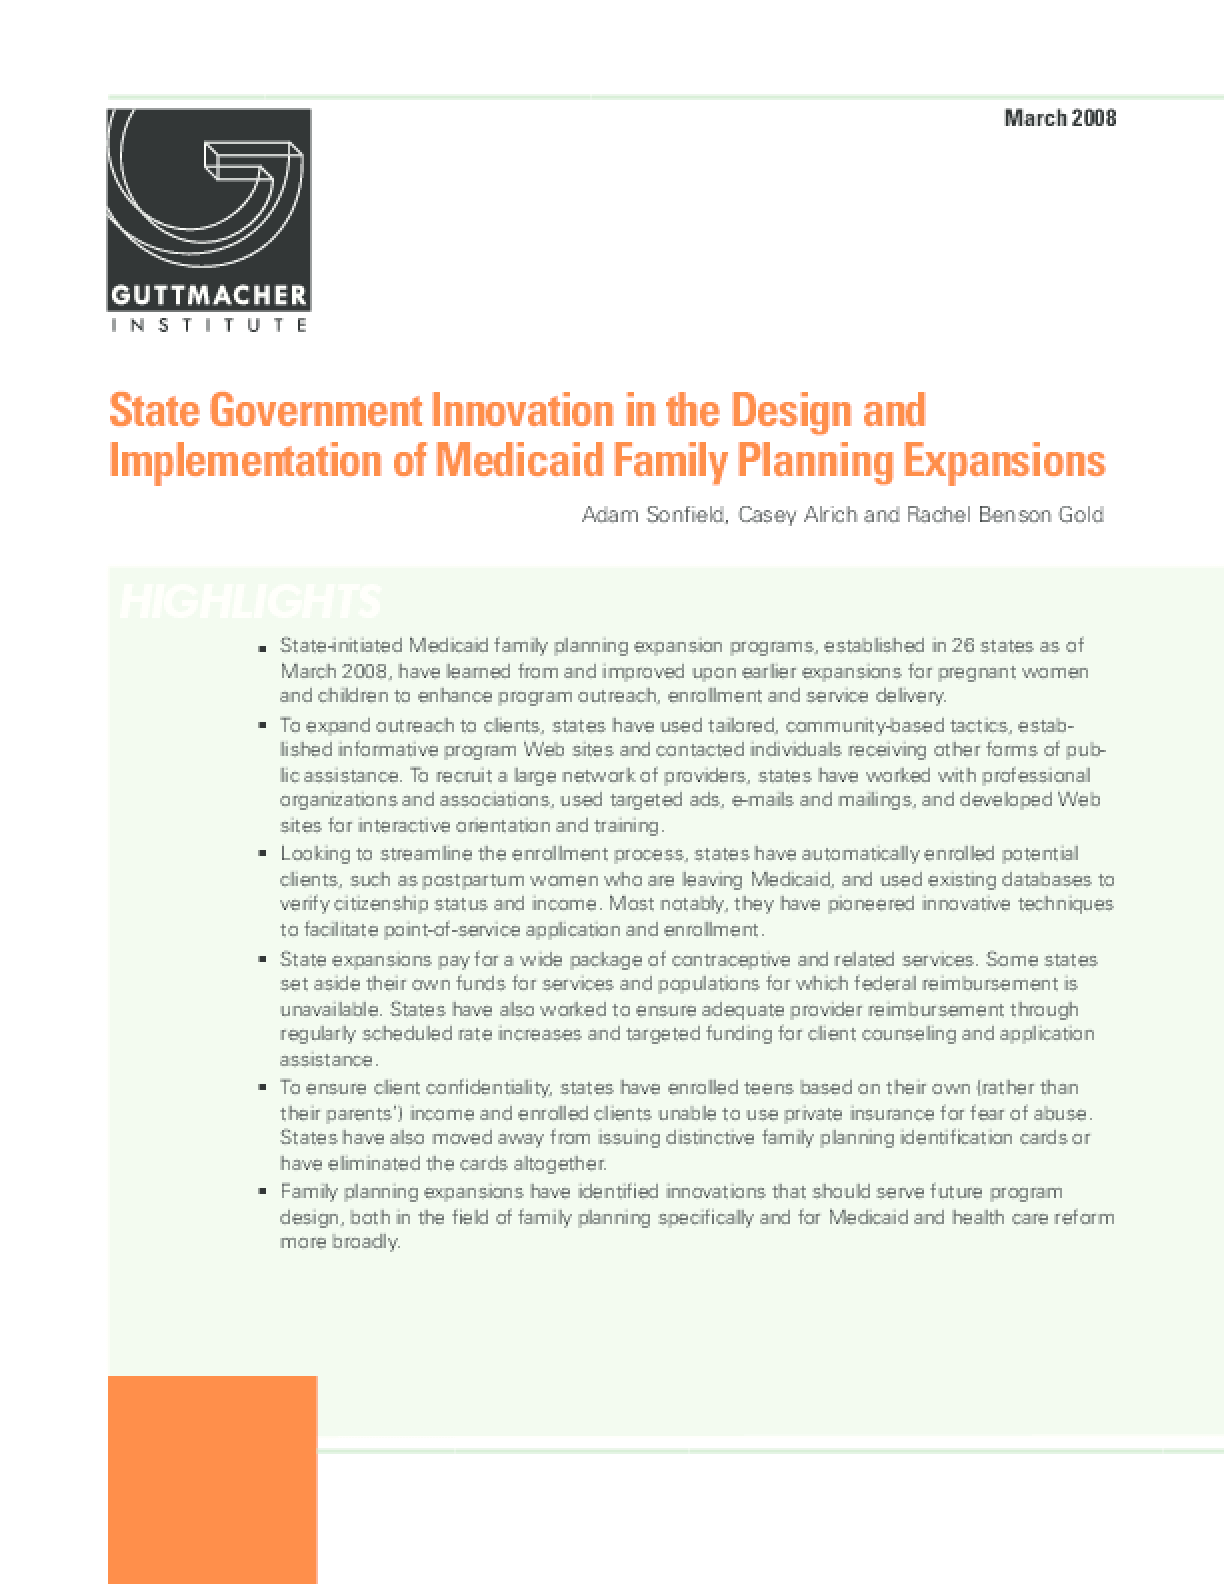 State Government Innovation in the Design and Implementation of Medicaid Family Planning Expansions